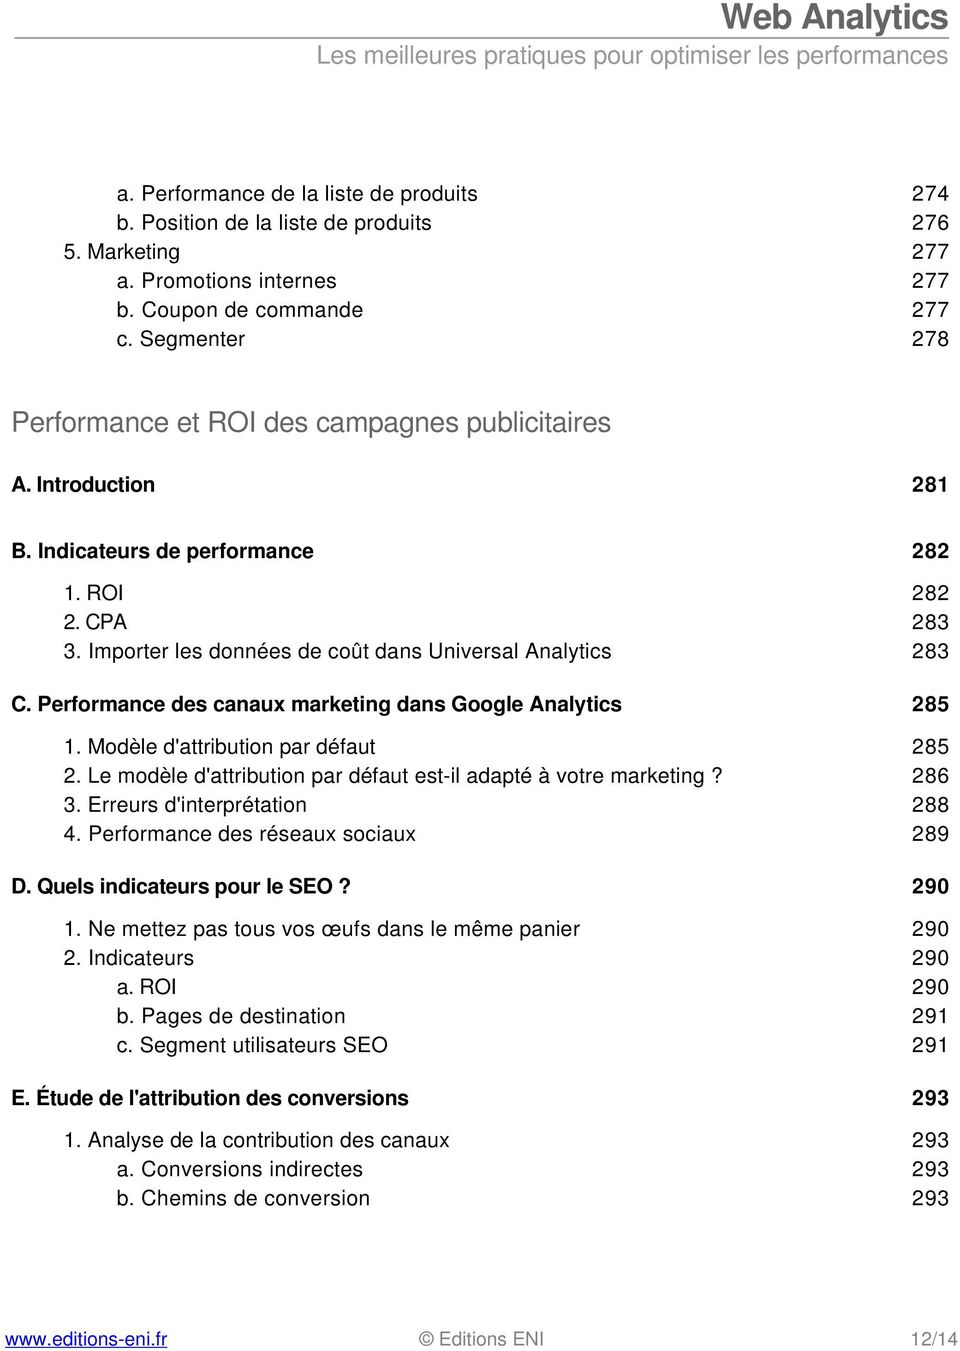 Performance des canaux marketing dans Google Analytics 285 1. Modèle d'attribution par défaut 285 2. Le modèle d'attribution par défaut est-il adapté à votre marketing? 286 3.